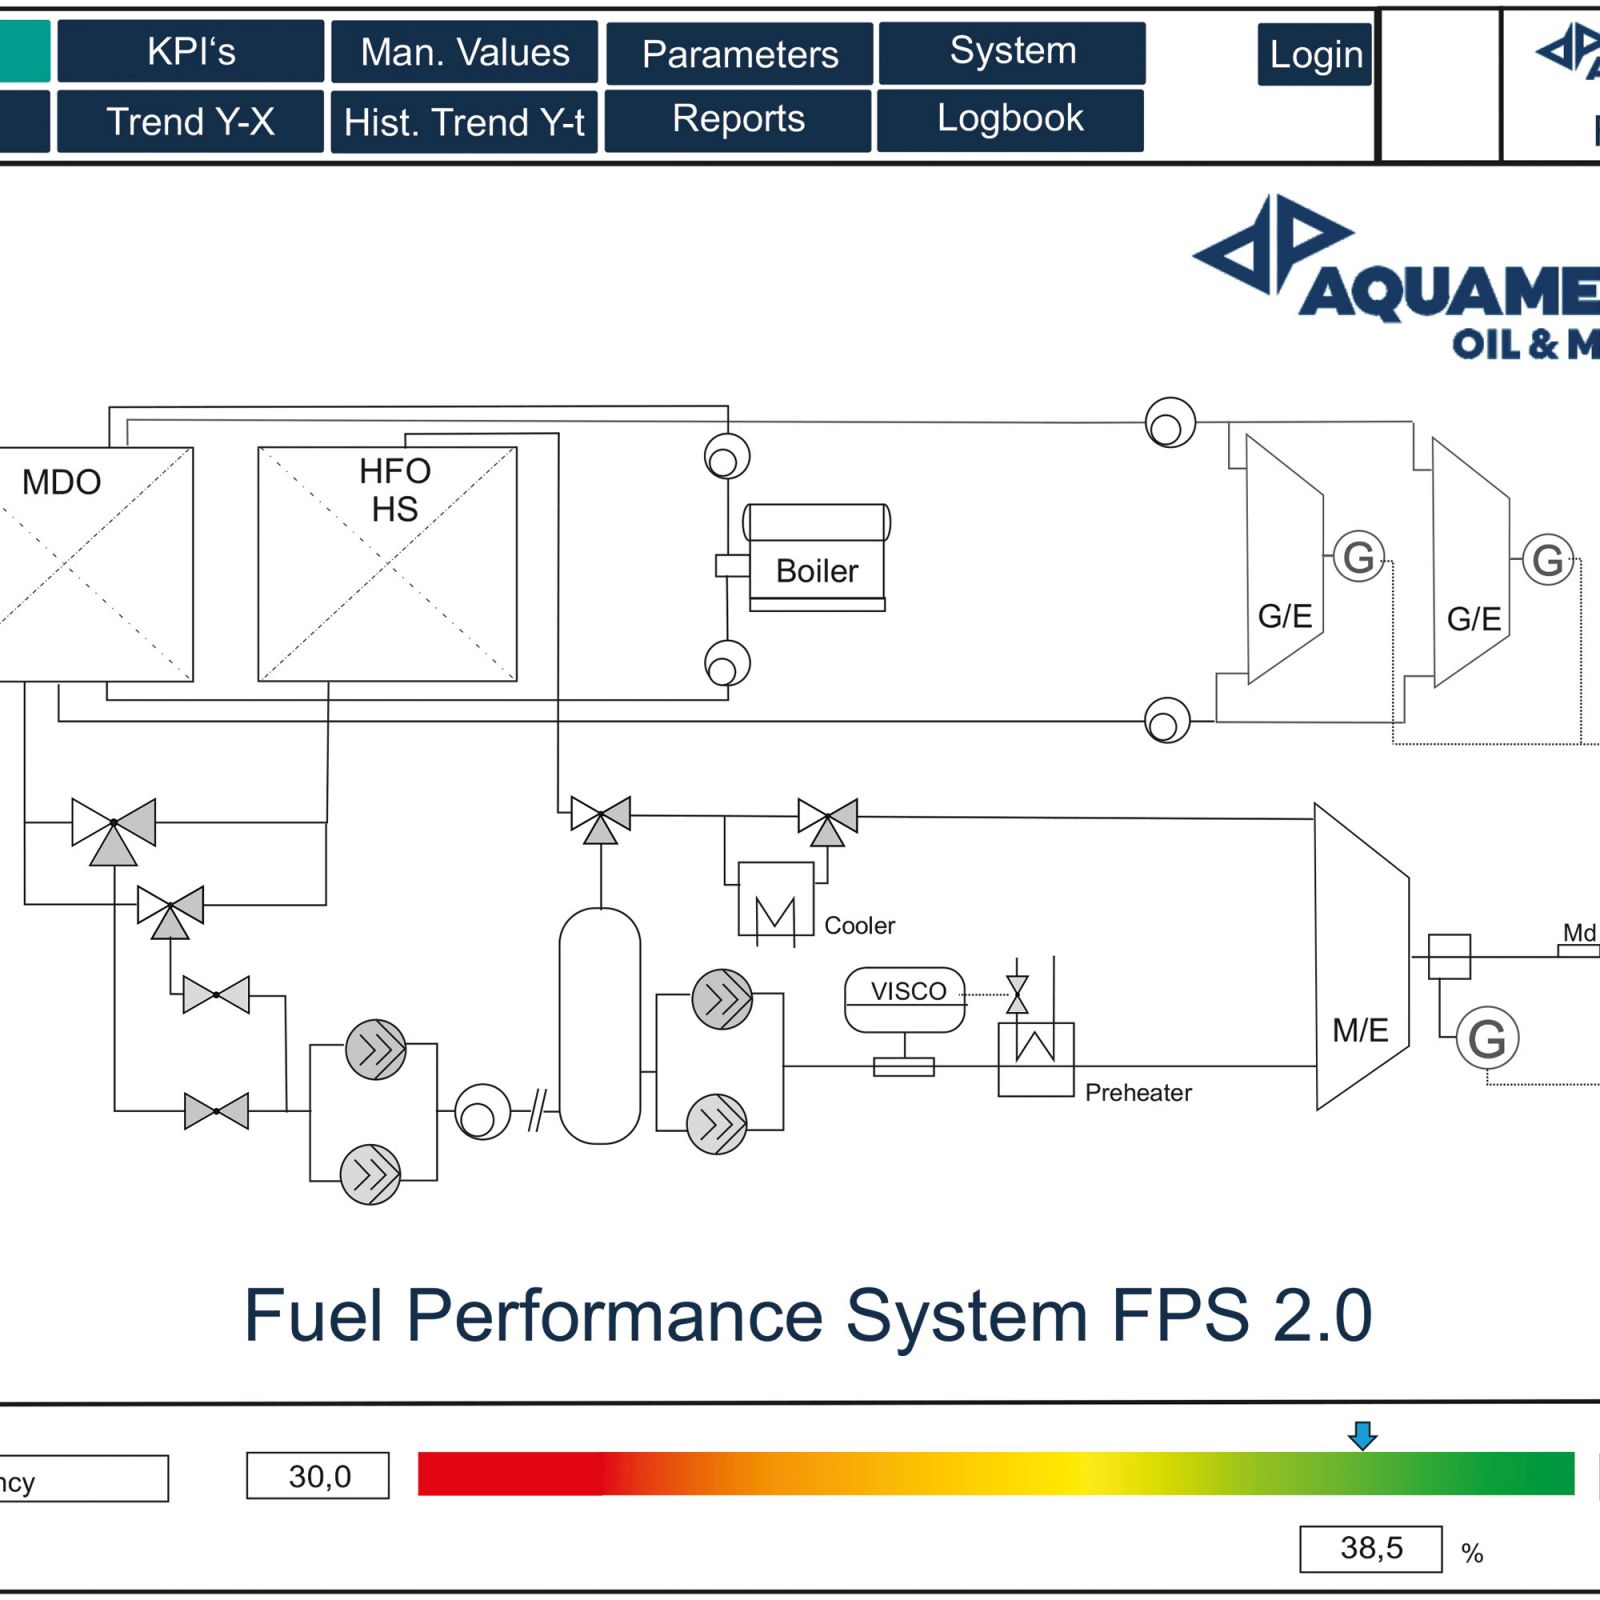 FPS Fuel Performance System